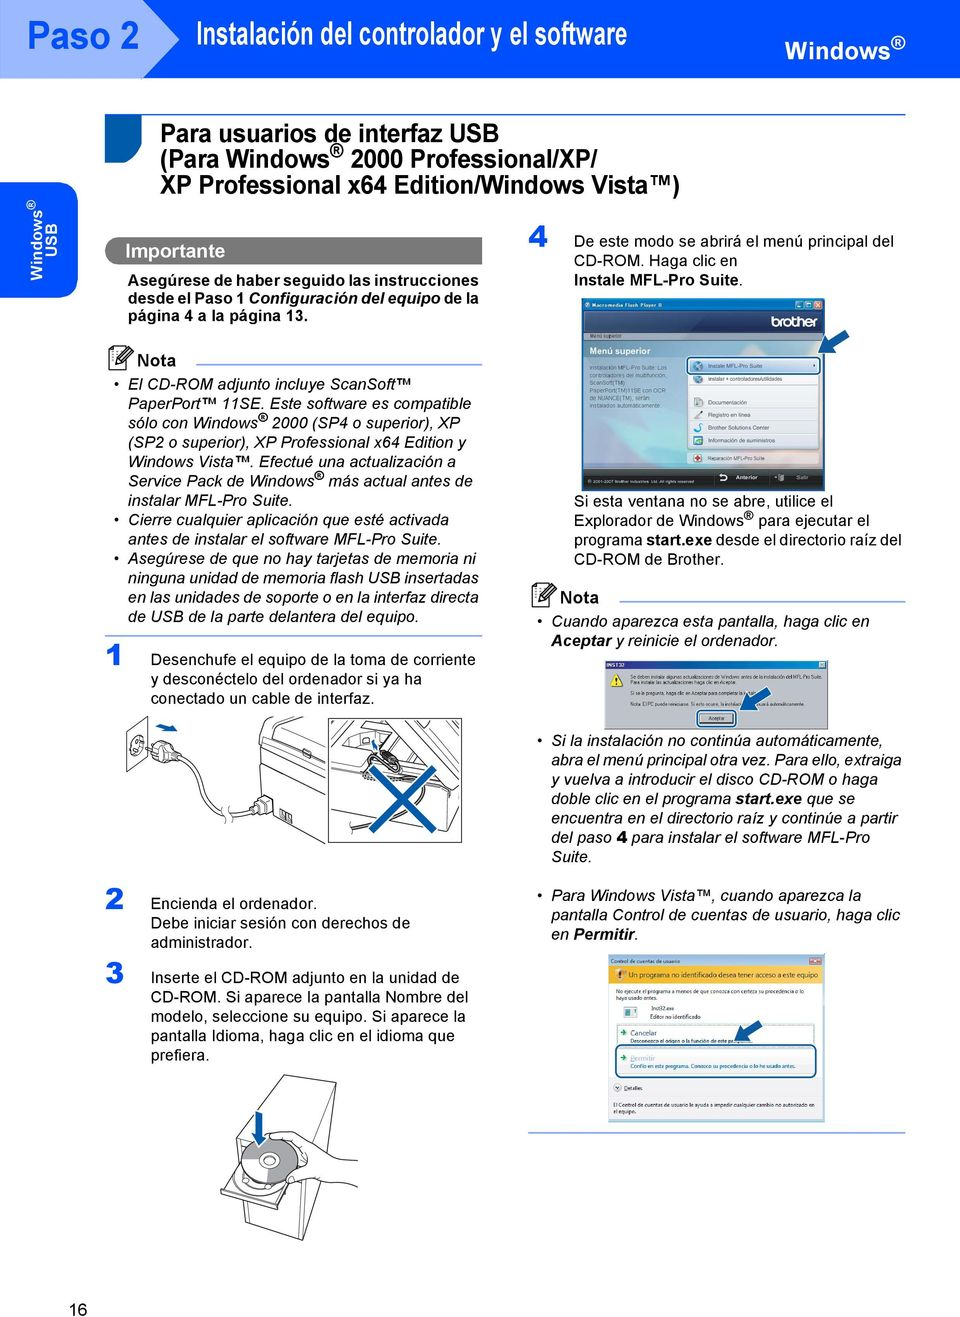 El CD-ROM adjunto incluye ScanSoft PaperPort SE. Este software es compatible sólo con Windows 2000 (SP4 o superior), XP (SP2 o superior), XP Professional x64 Edition y Windows Vista.